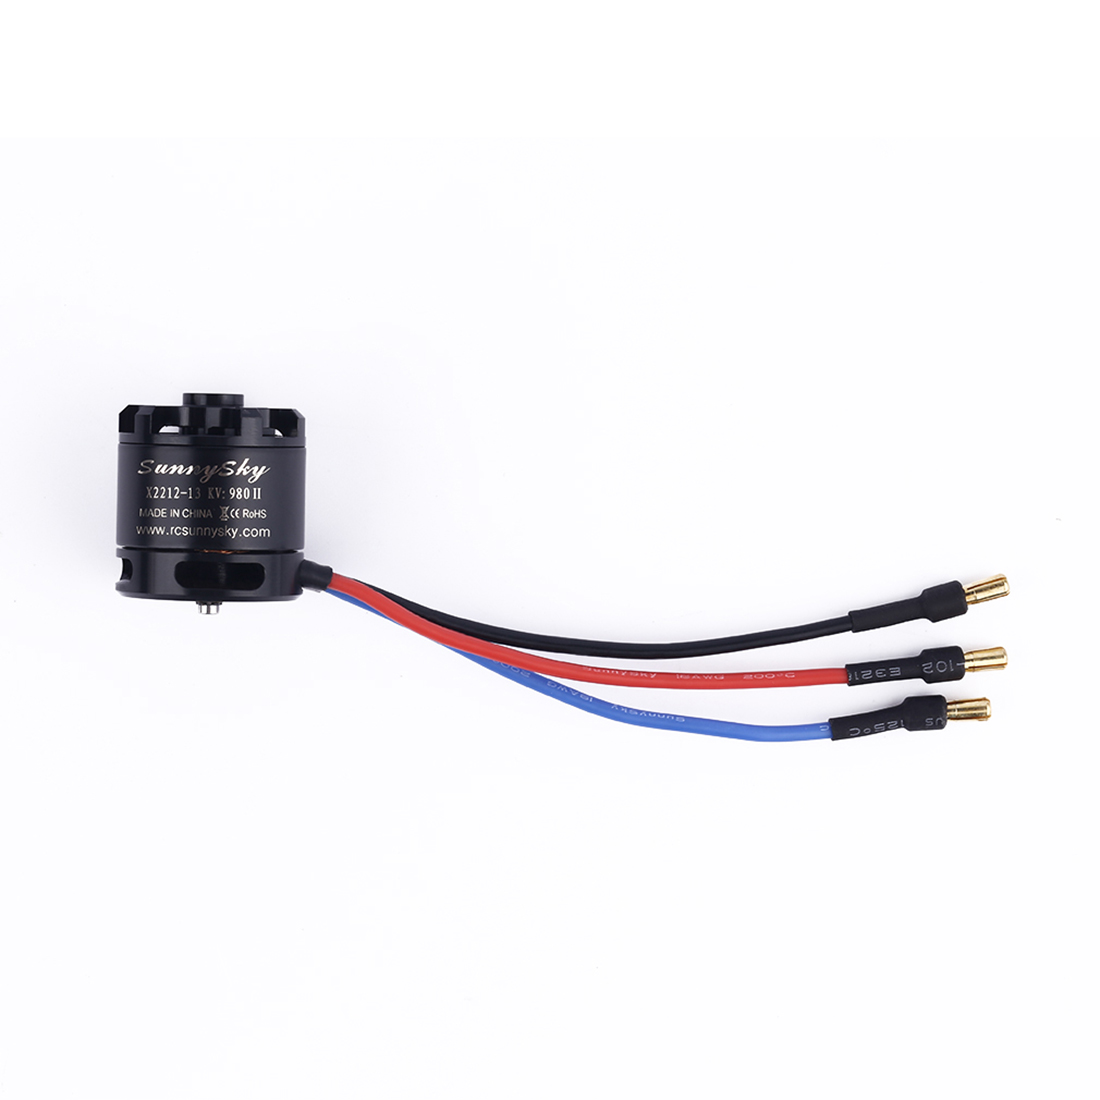 X2212 KV980 Brushless Motor Quad-Hexa Copter For Fobotic Arduino Mega RC Quadcopter Accessories